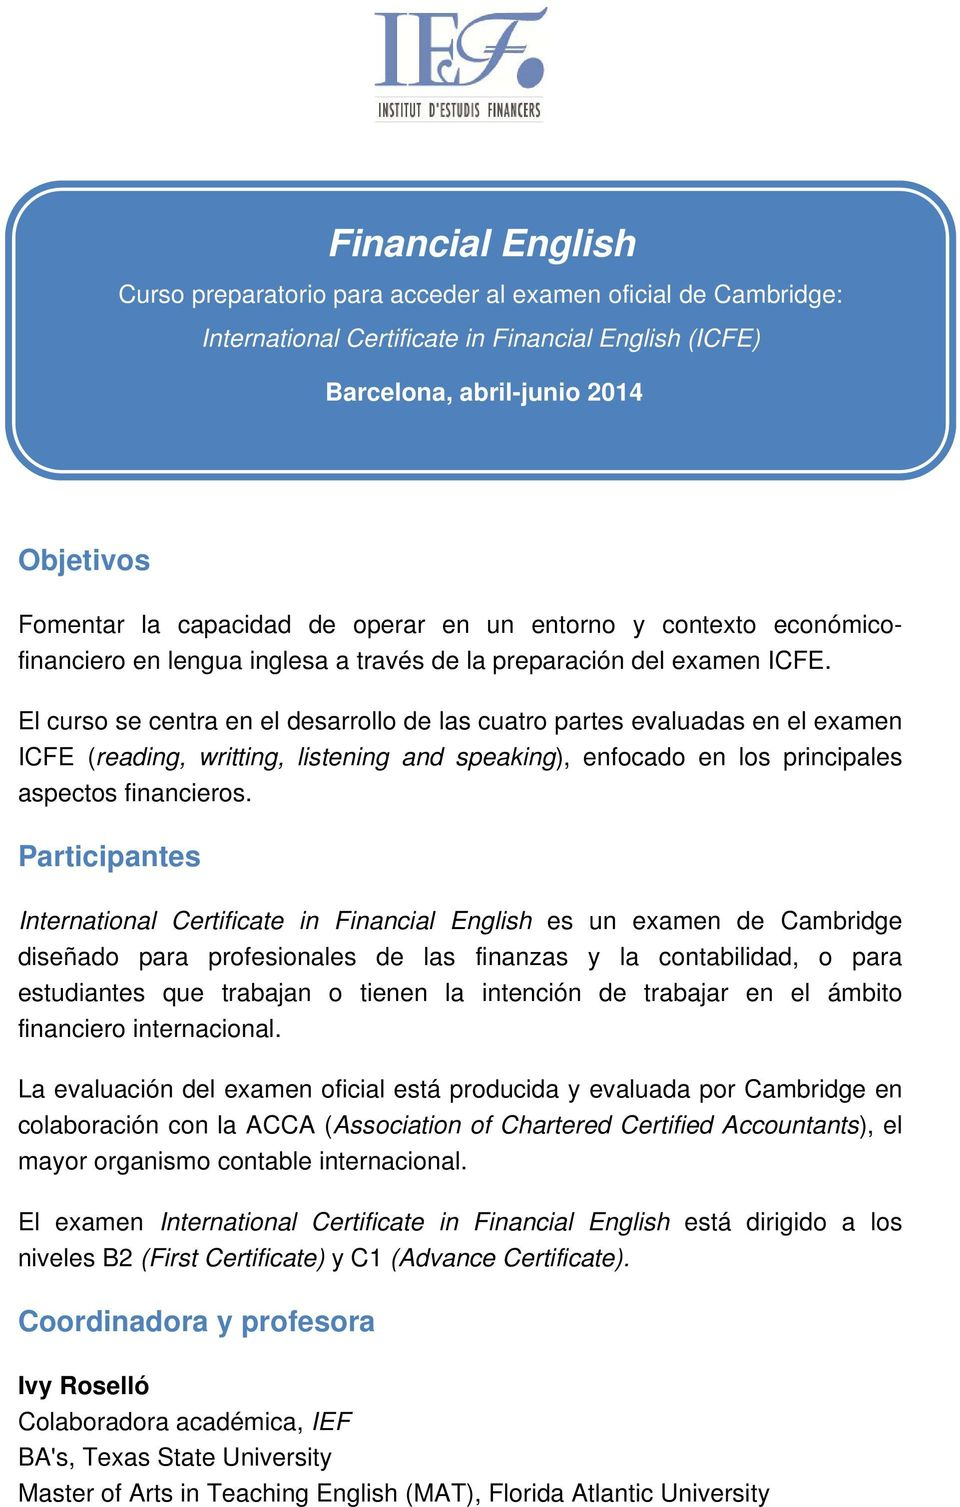 El curso se centra en el desarrollo de las cuatro partes evaluadas en el examen ICFE (reading, writting, listening and speaking), enfocado en los principales aspectos financieros.